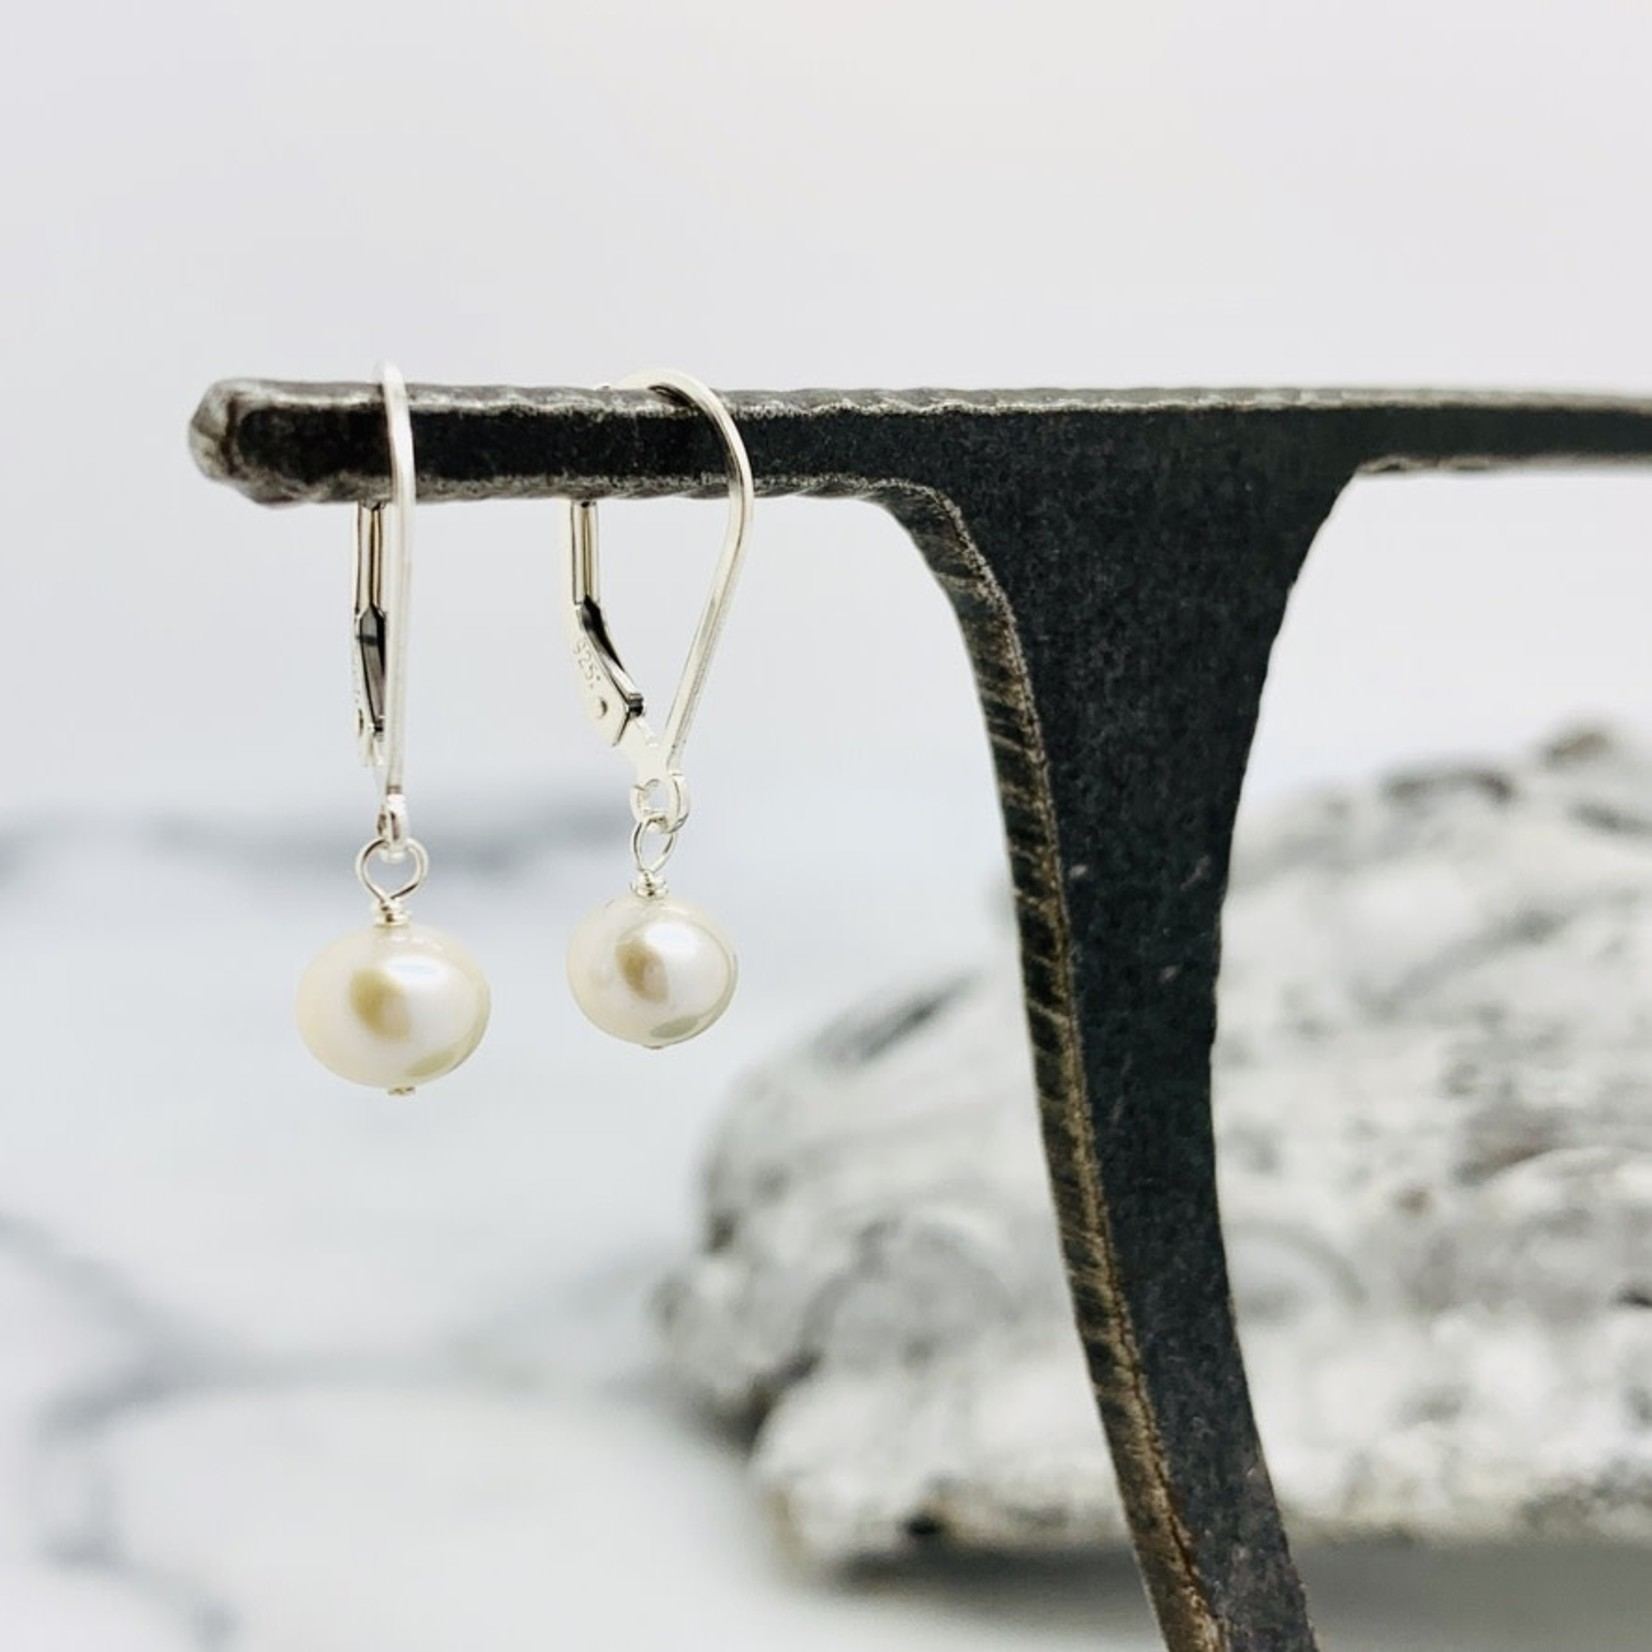 Silver and 6.5mm FW Pearl Earring with Leverback